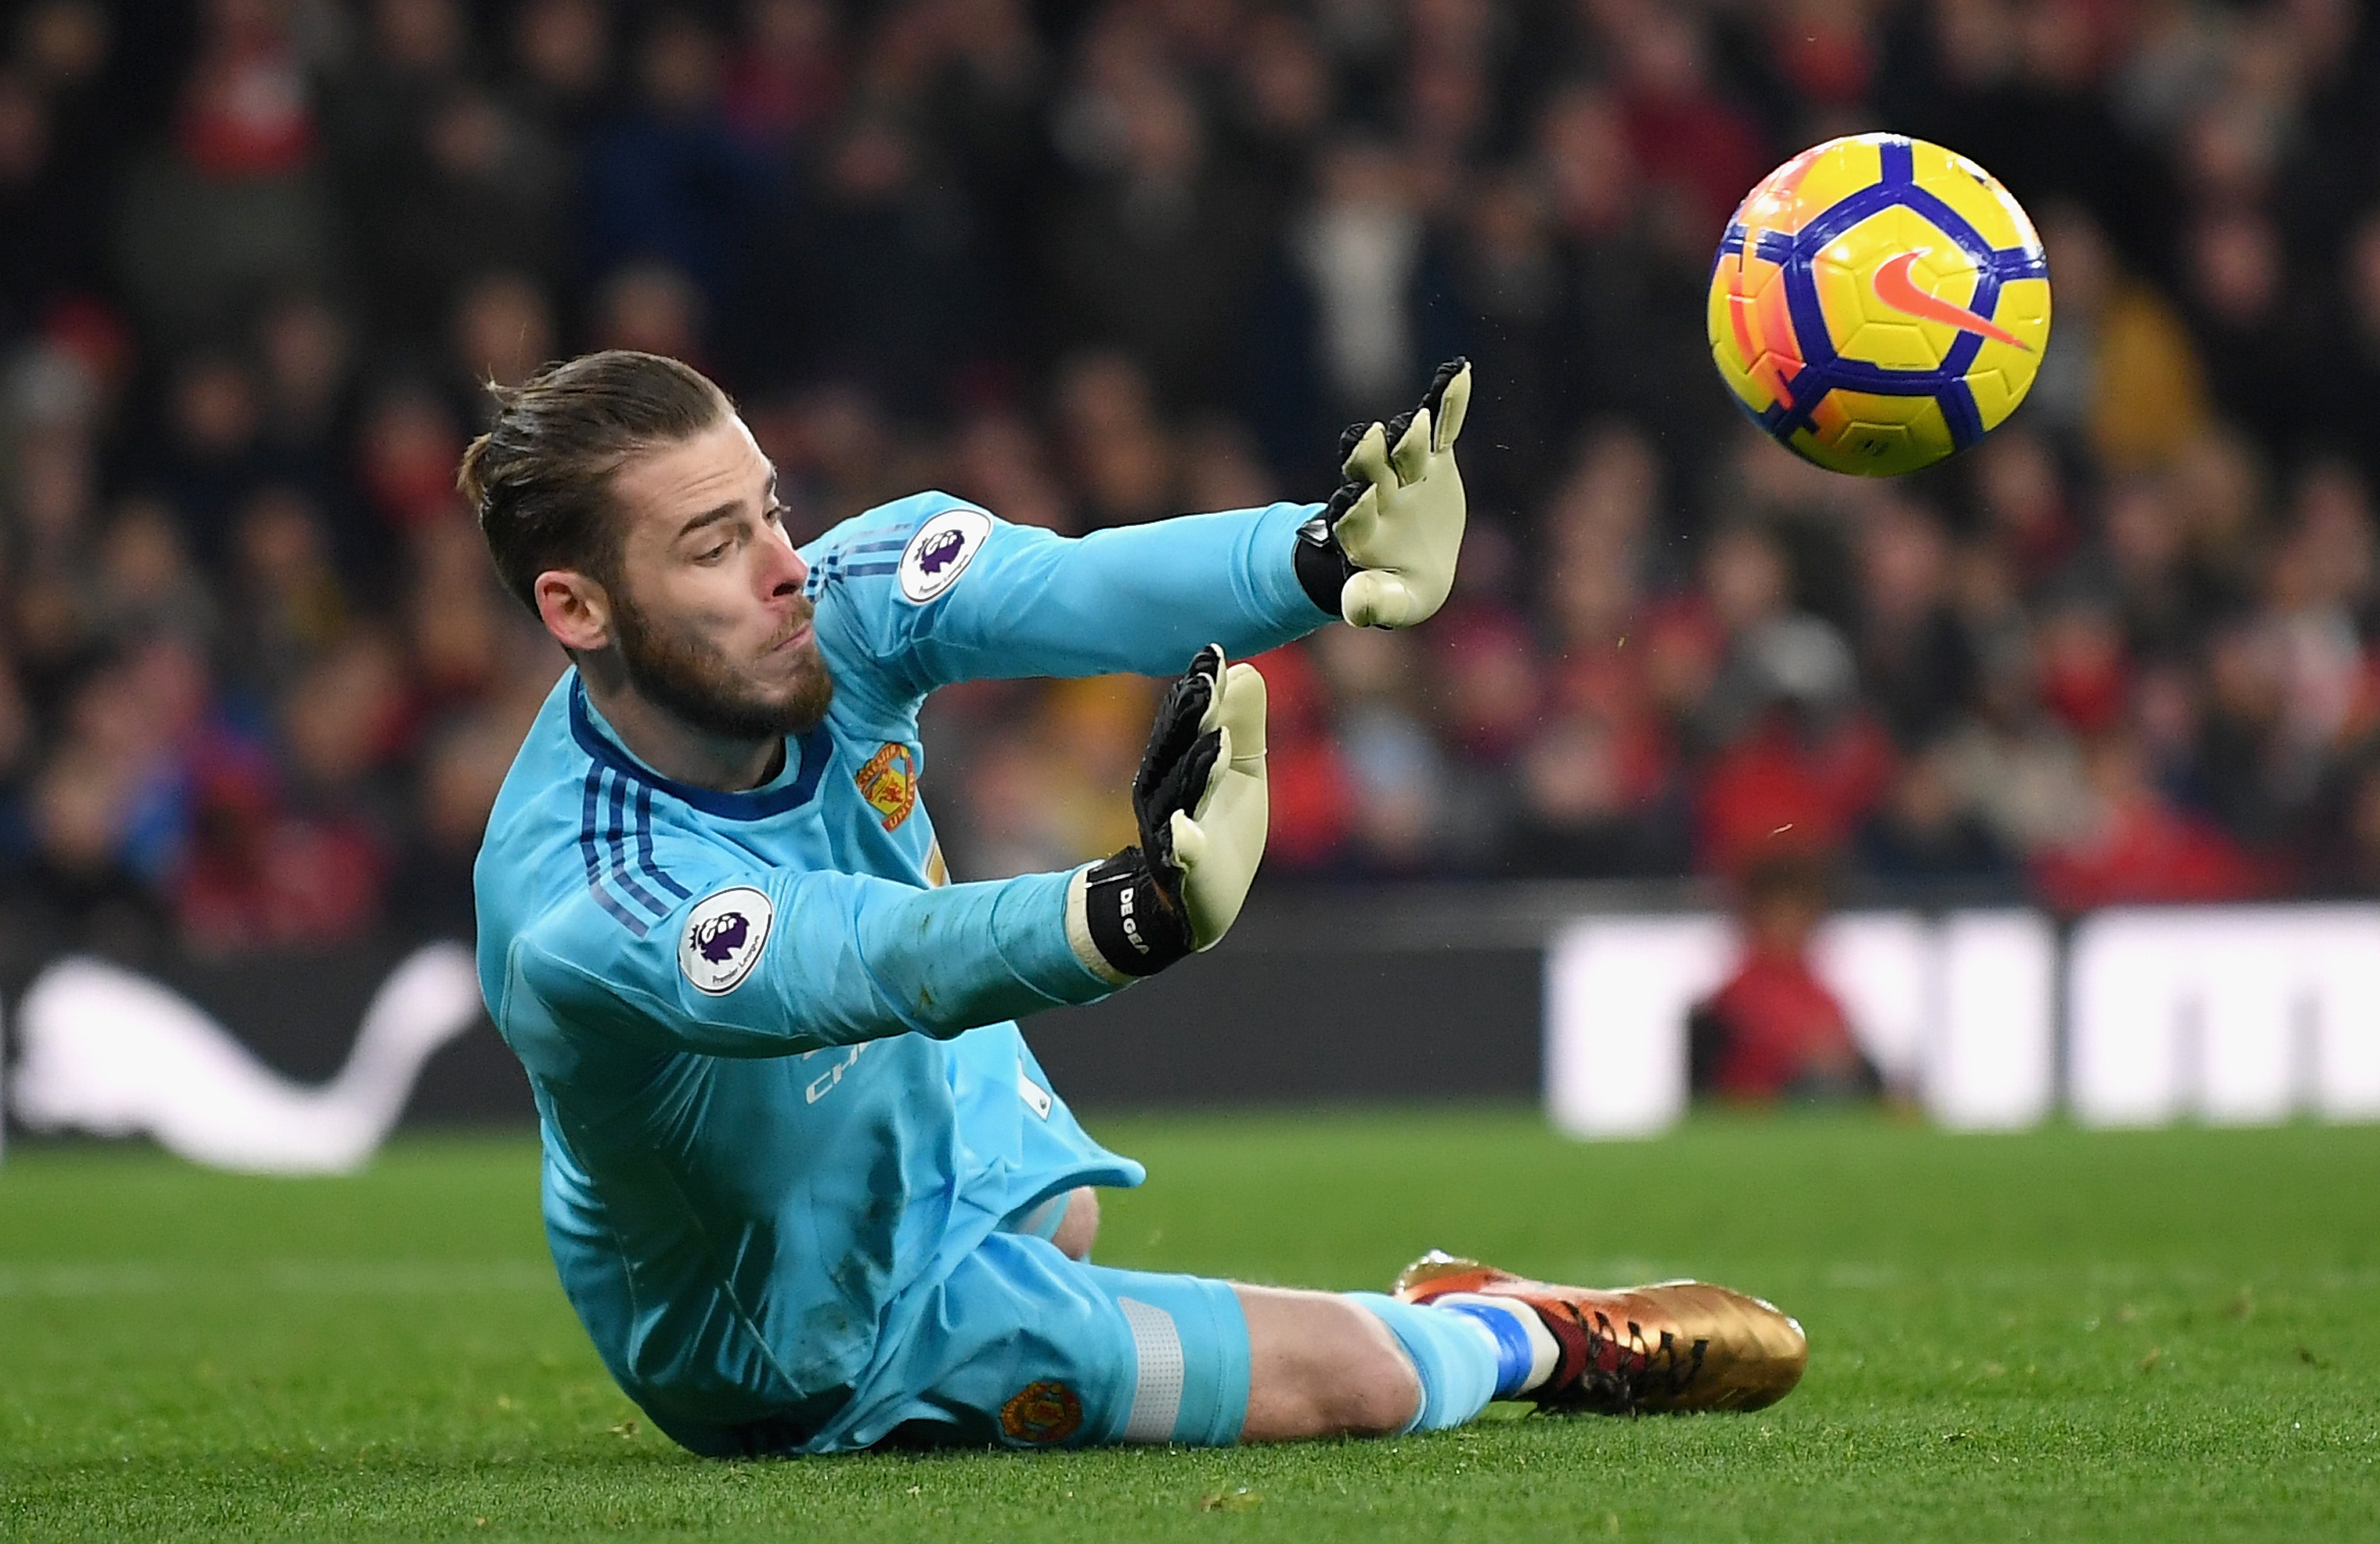 De Gea felt 'unstoppable' in heroic 14-save display at Arsenal